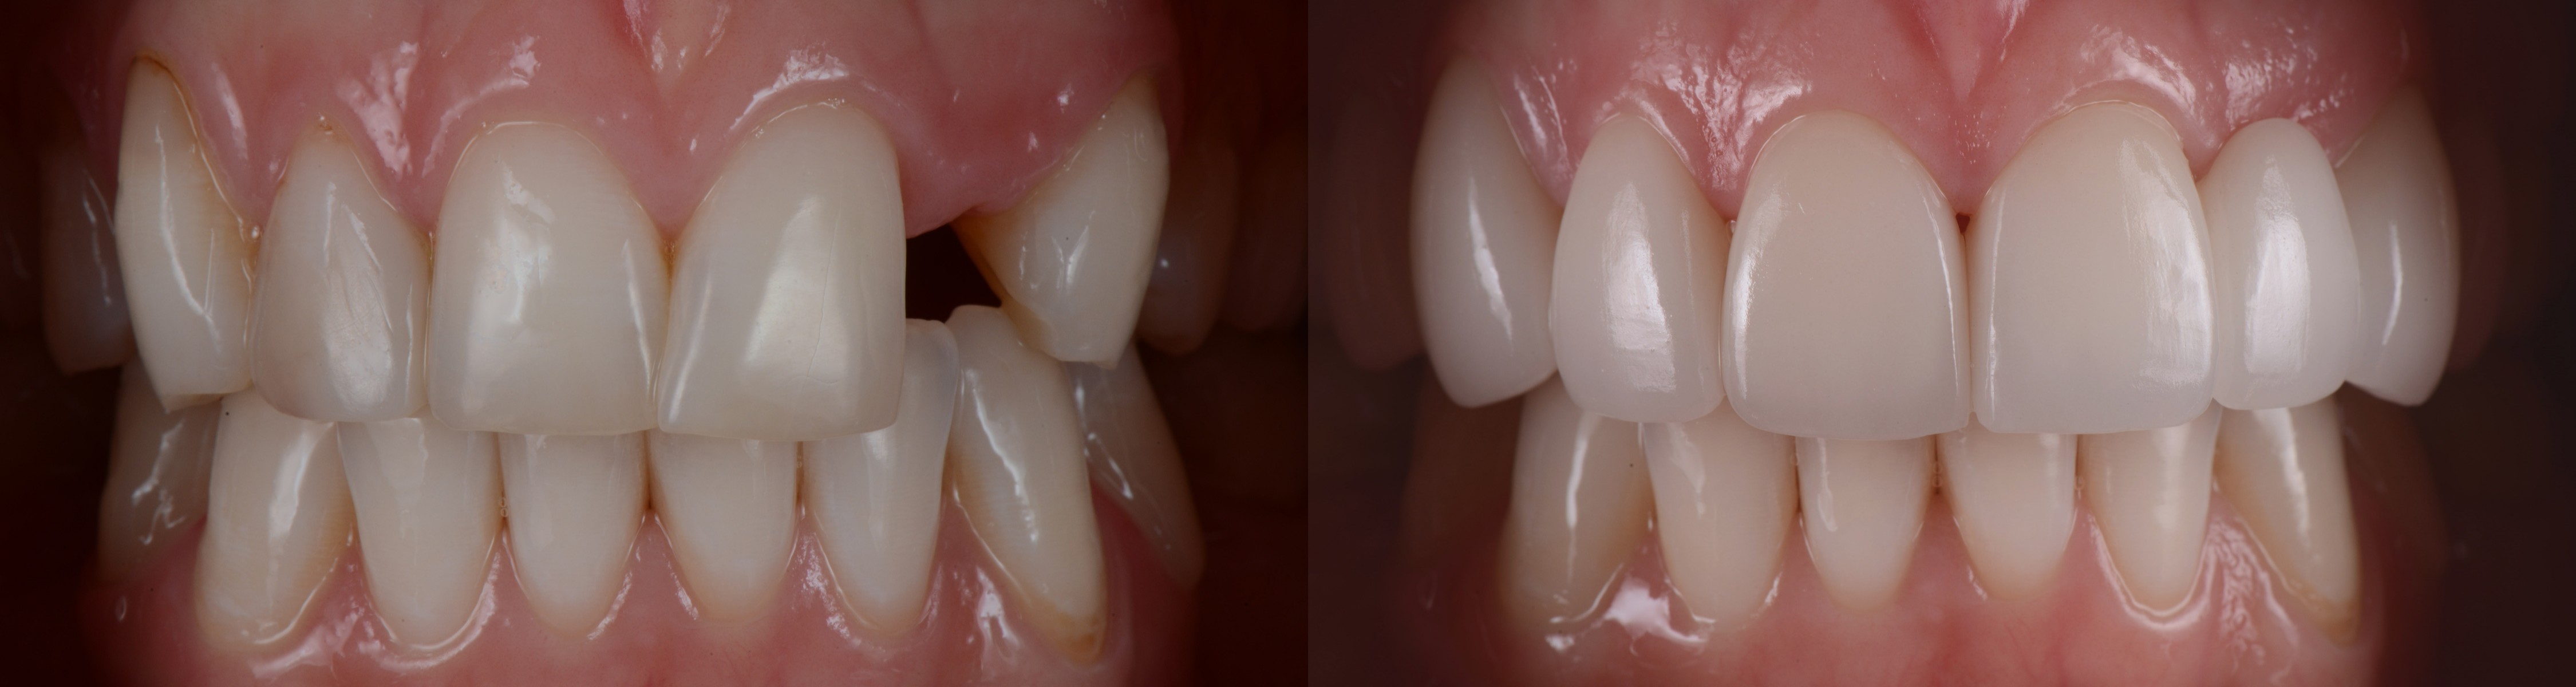 When to Get Single Tooth Replacement Dental Implants